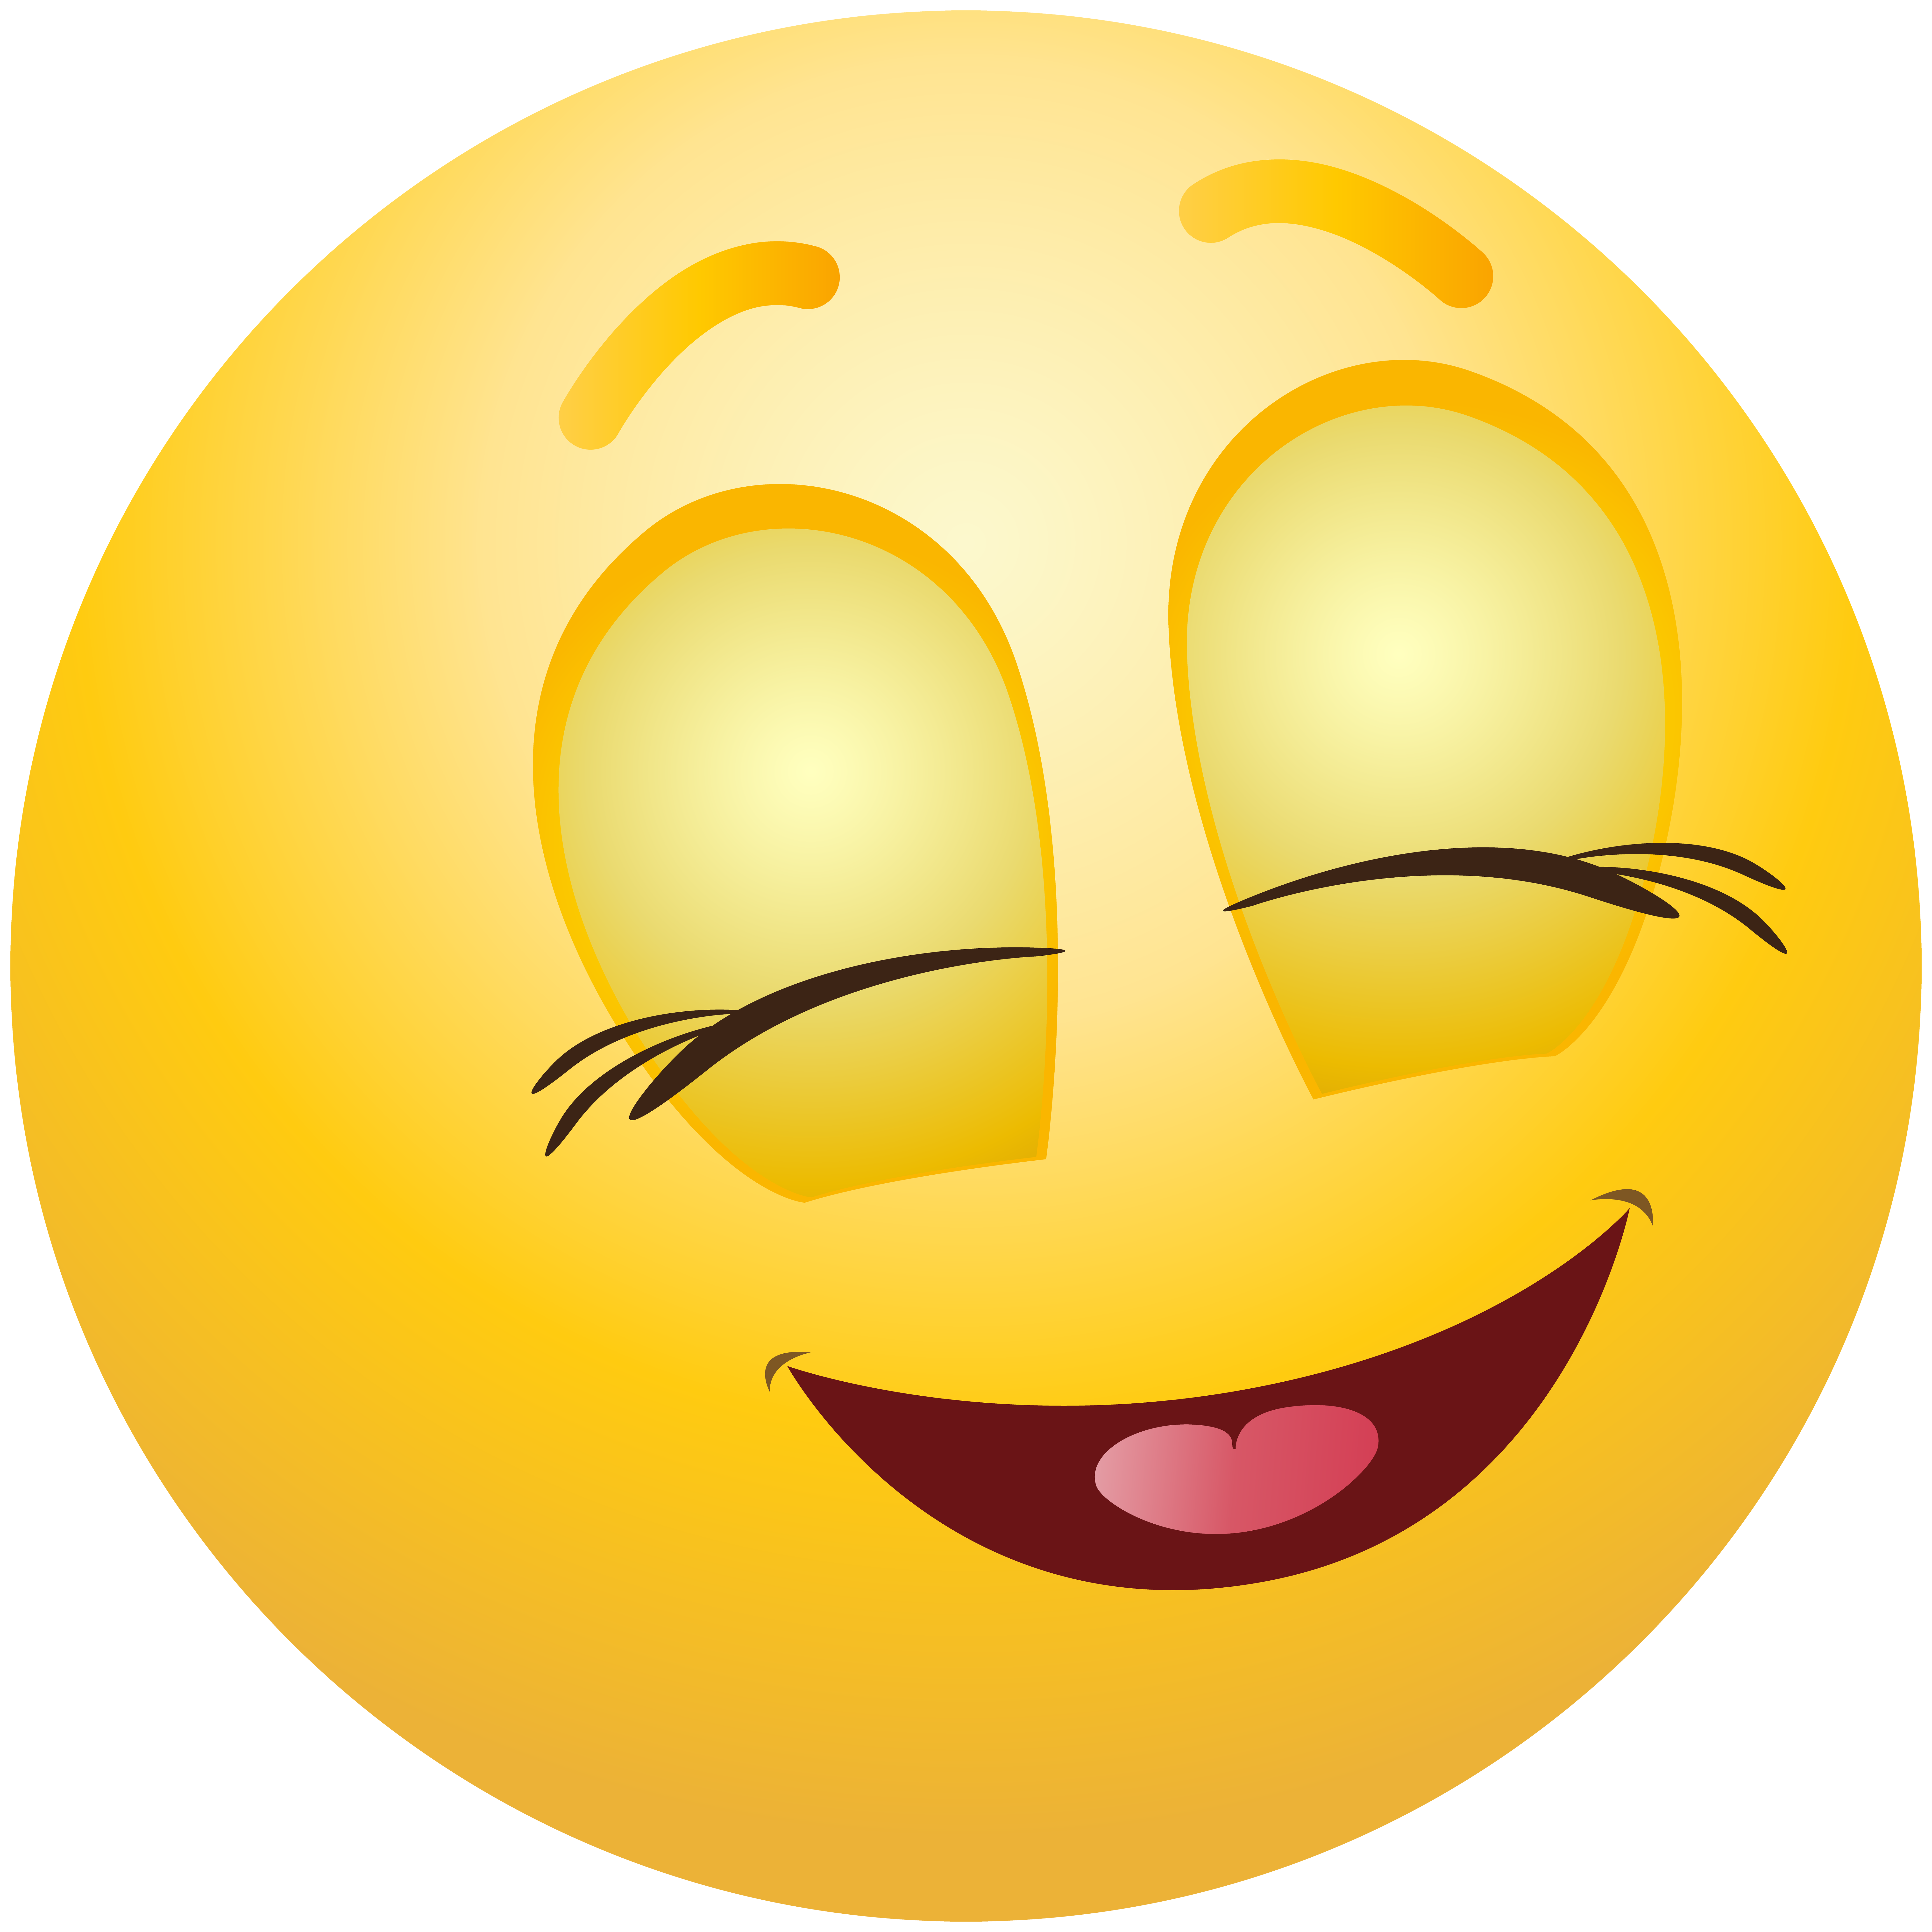 image freeuse Pleased emoticon png best. Vector emojis clip art